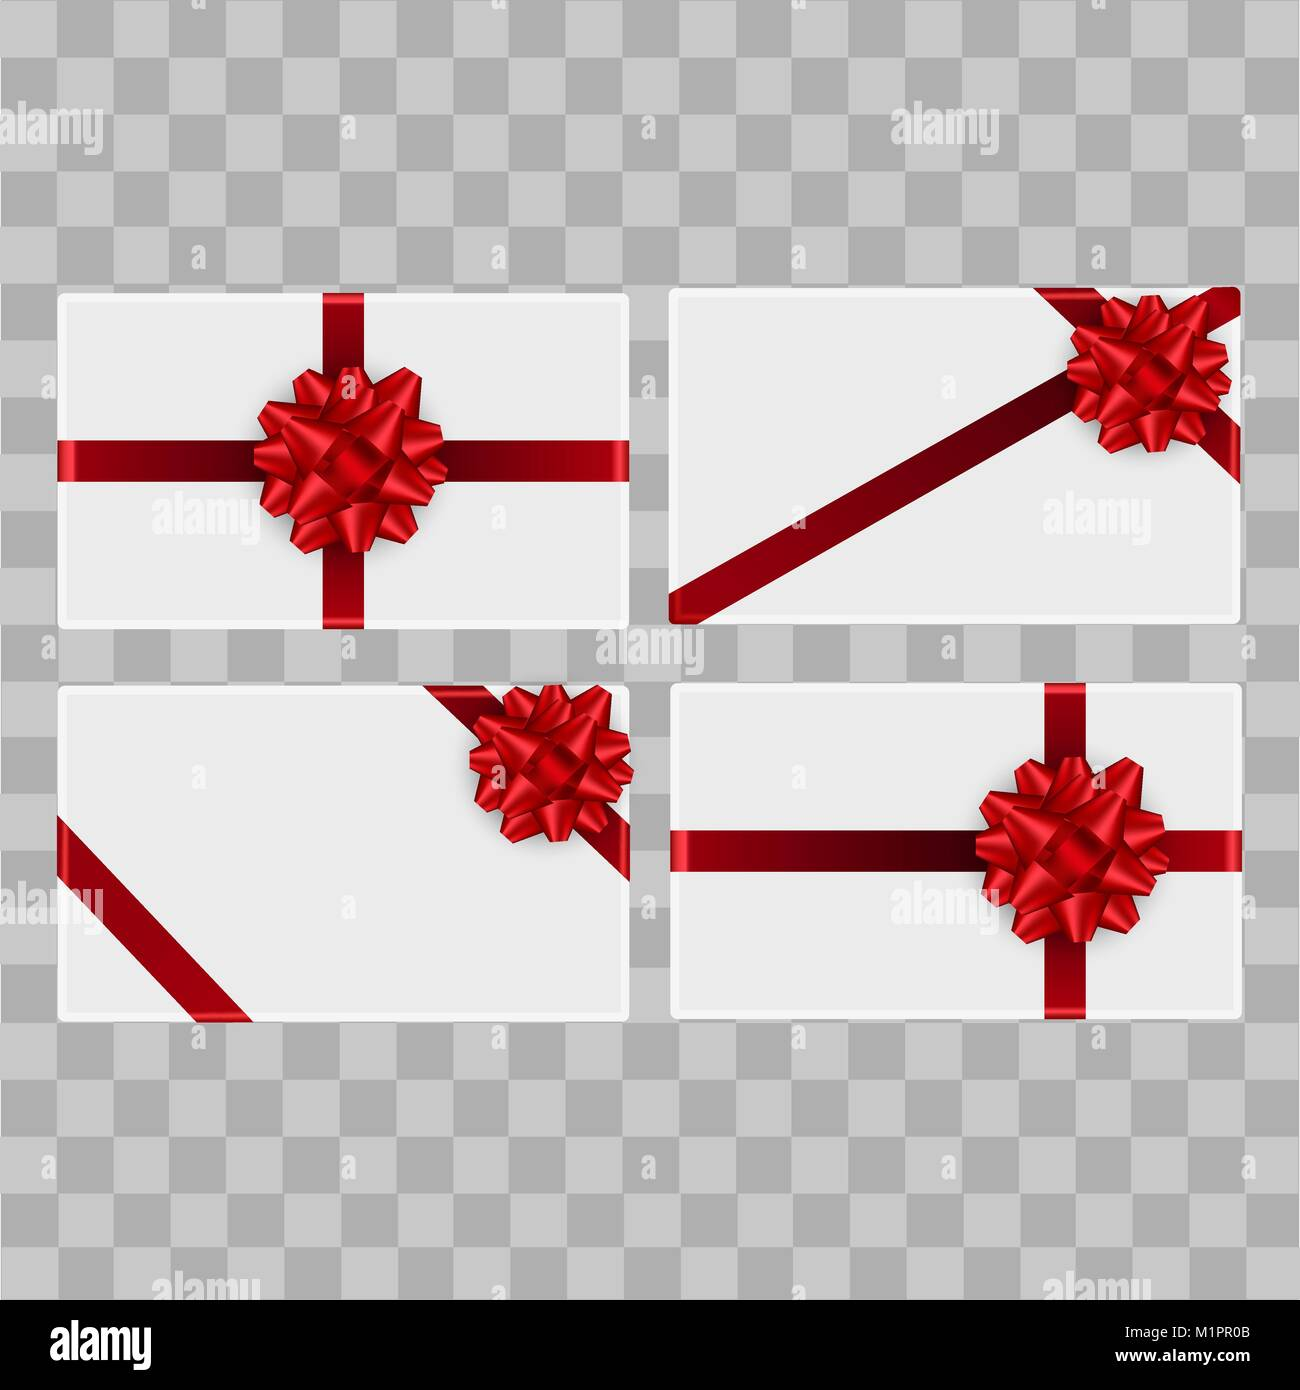 Christmas gifts transparent background